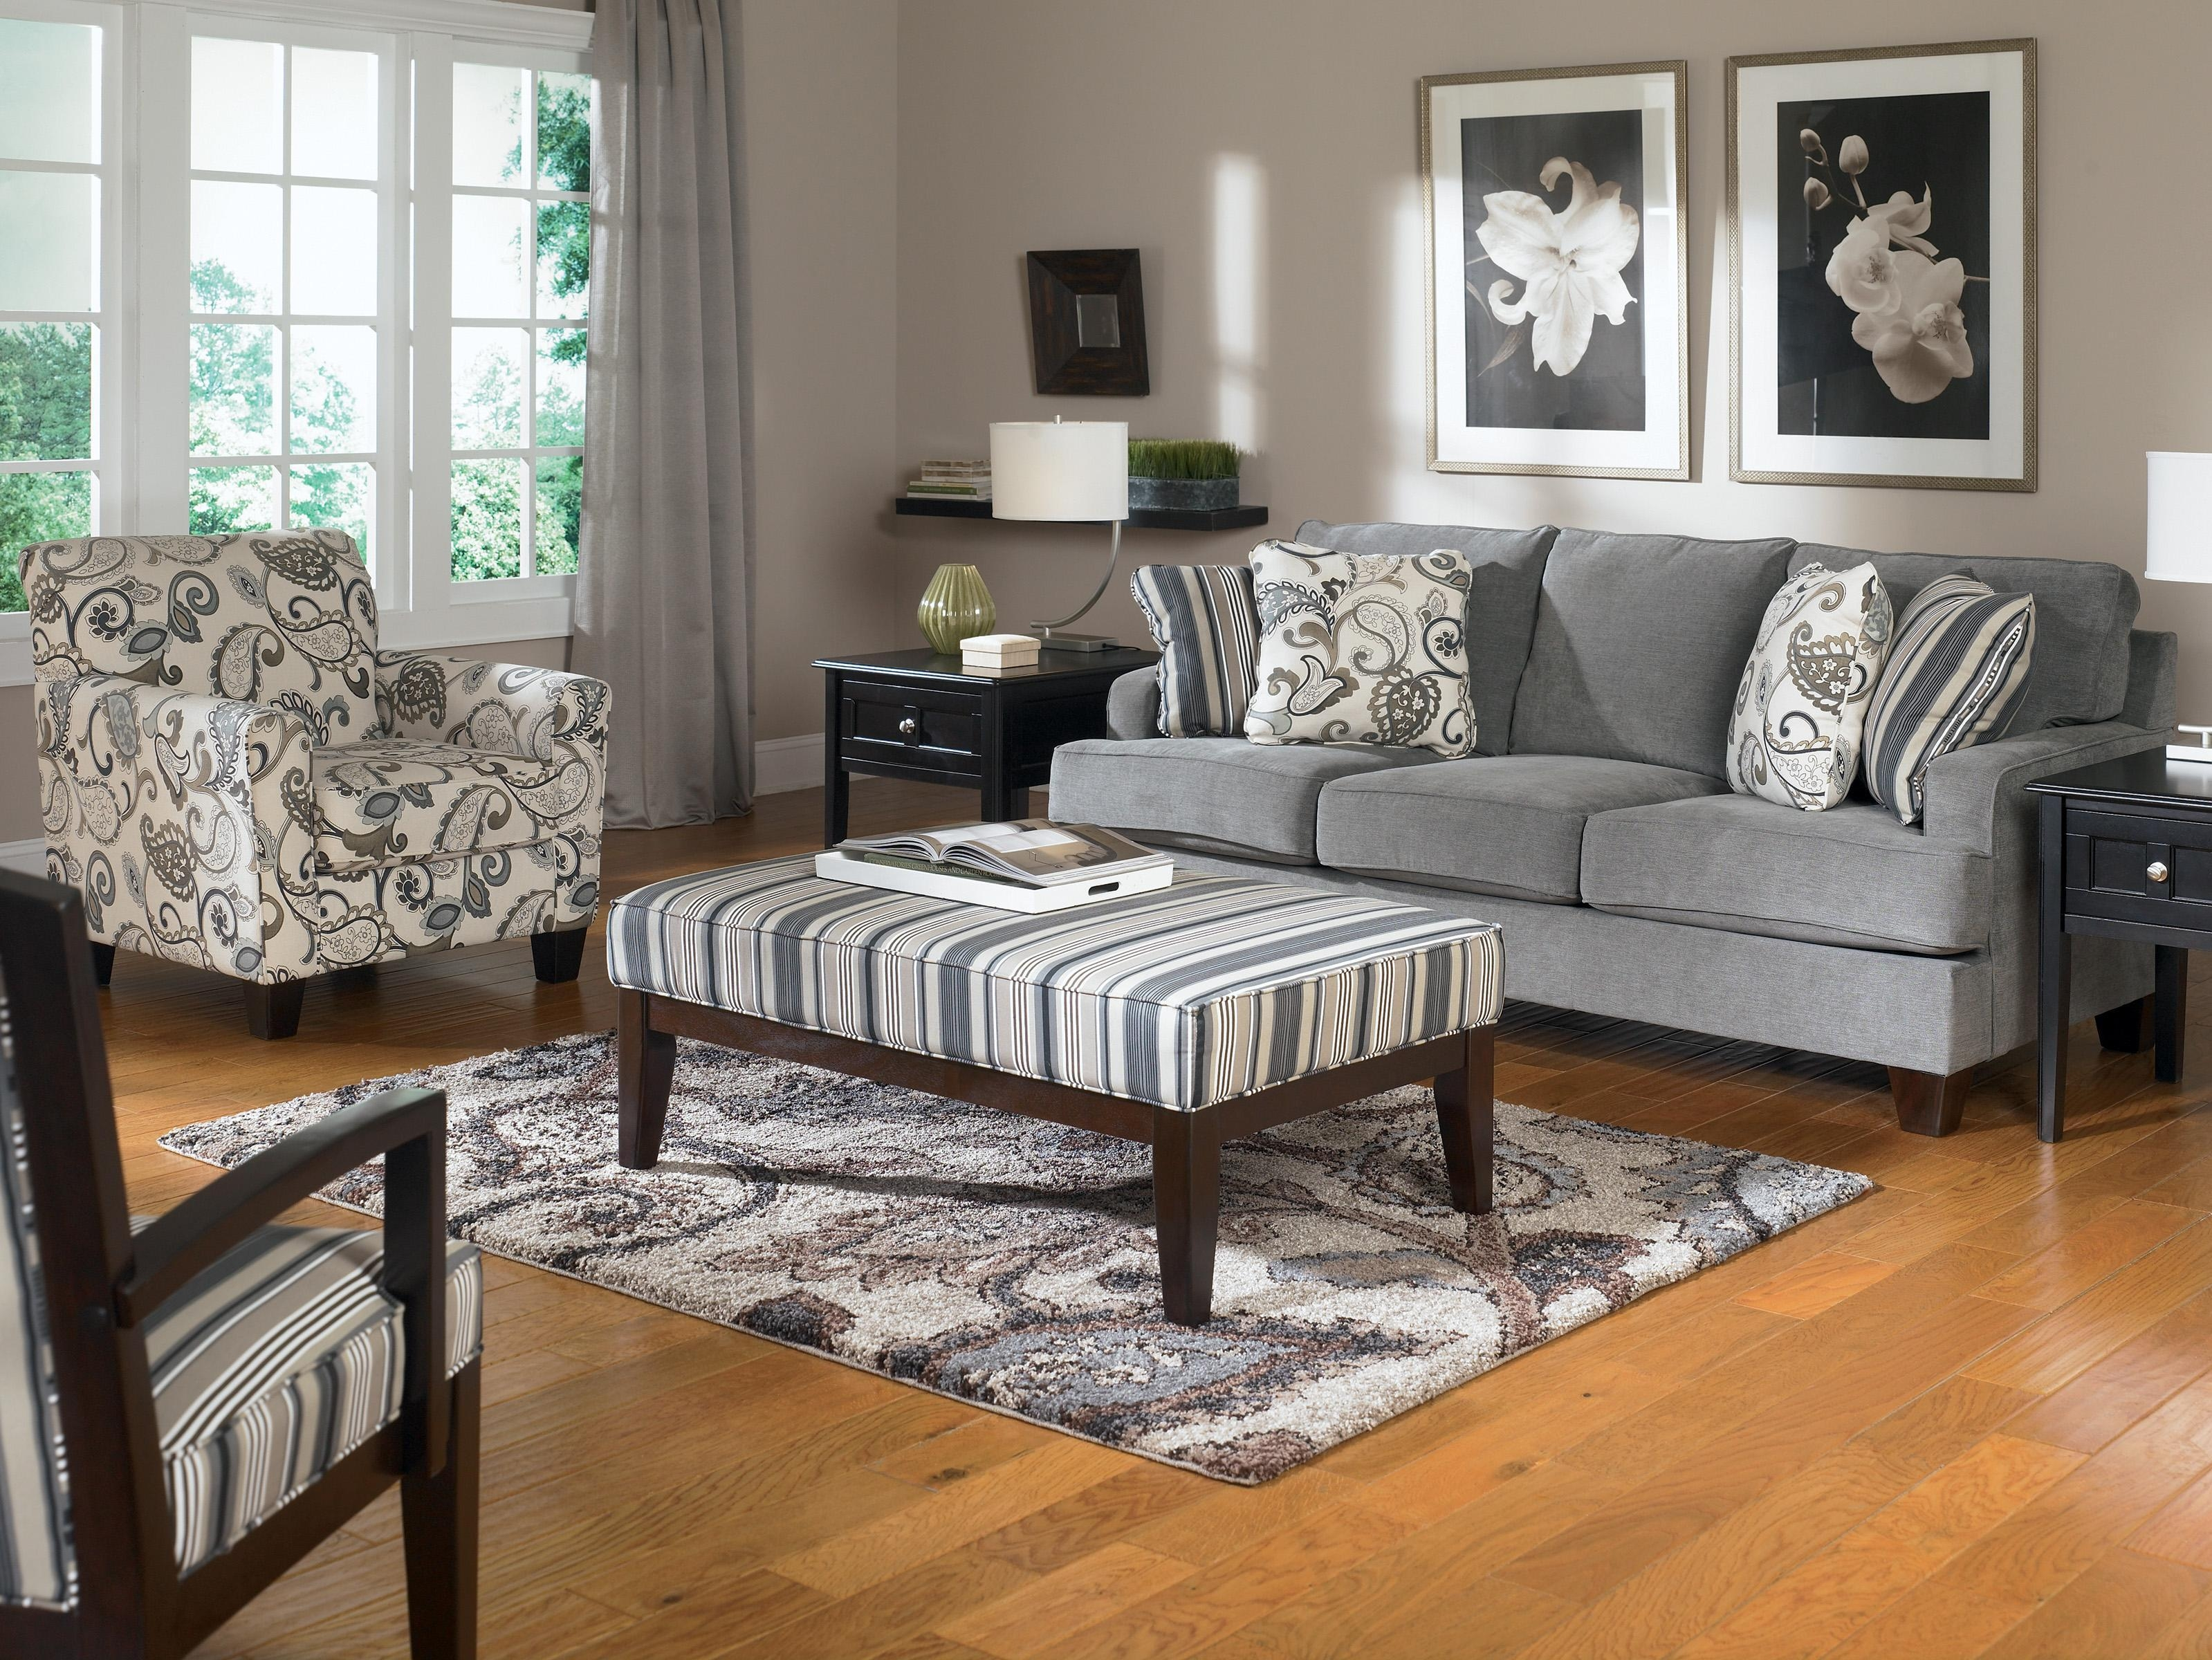 Ashley Furniture Yvette – Steel Accent Chair W/ Loose Seat Cushion Throughout Accent Sofa Chairs (View 8 of 20)